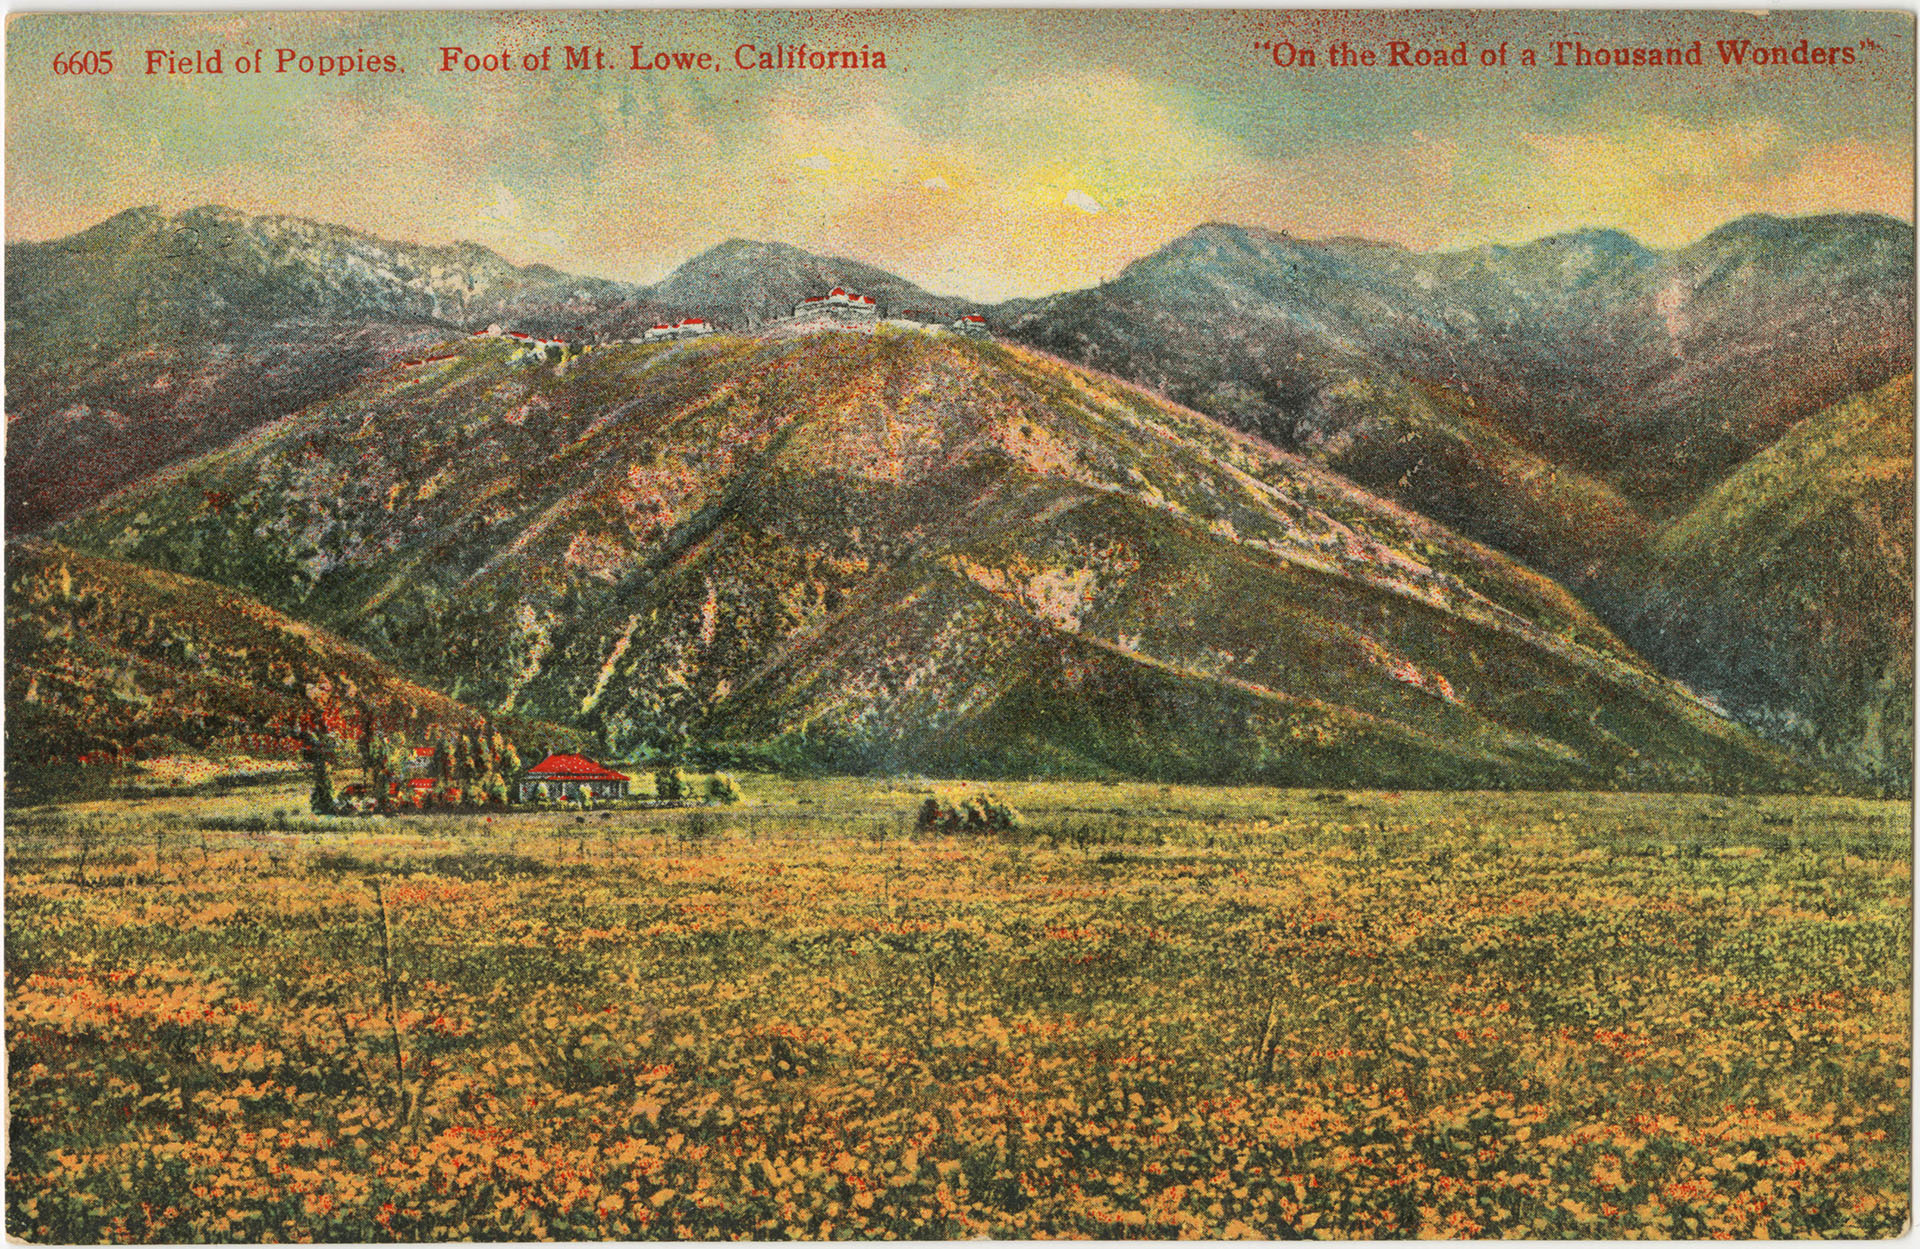 Circa 1893/1900 postcard of a poppy field at the foot of Mt. Lowe